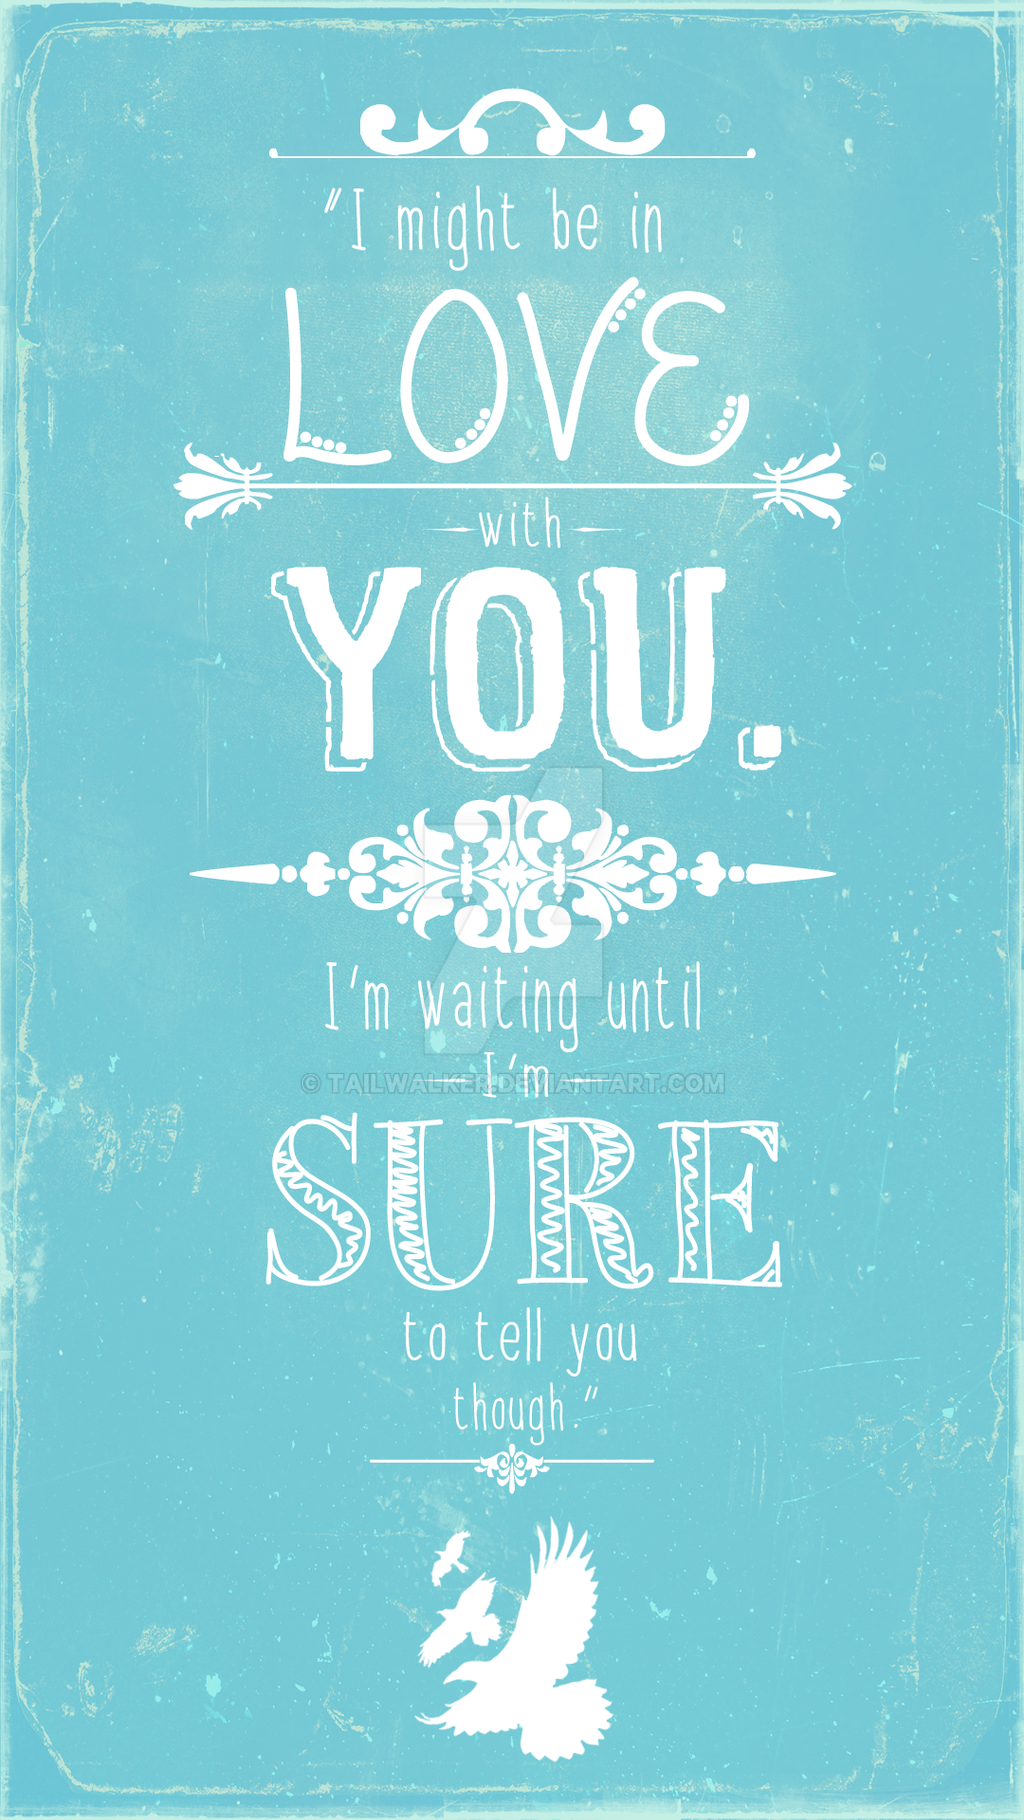 divergent i might be in love with you phone wp by tailwalker on